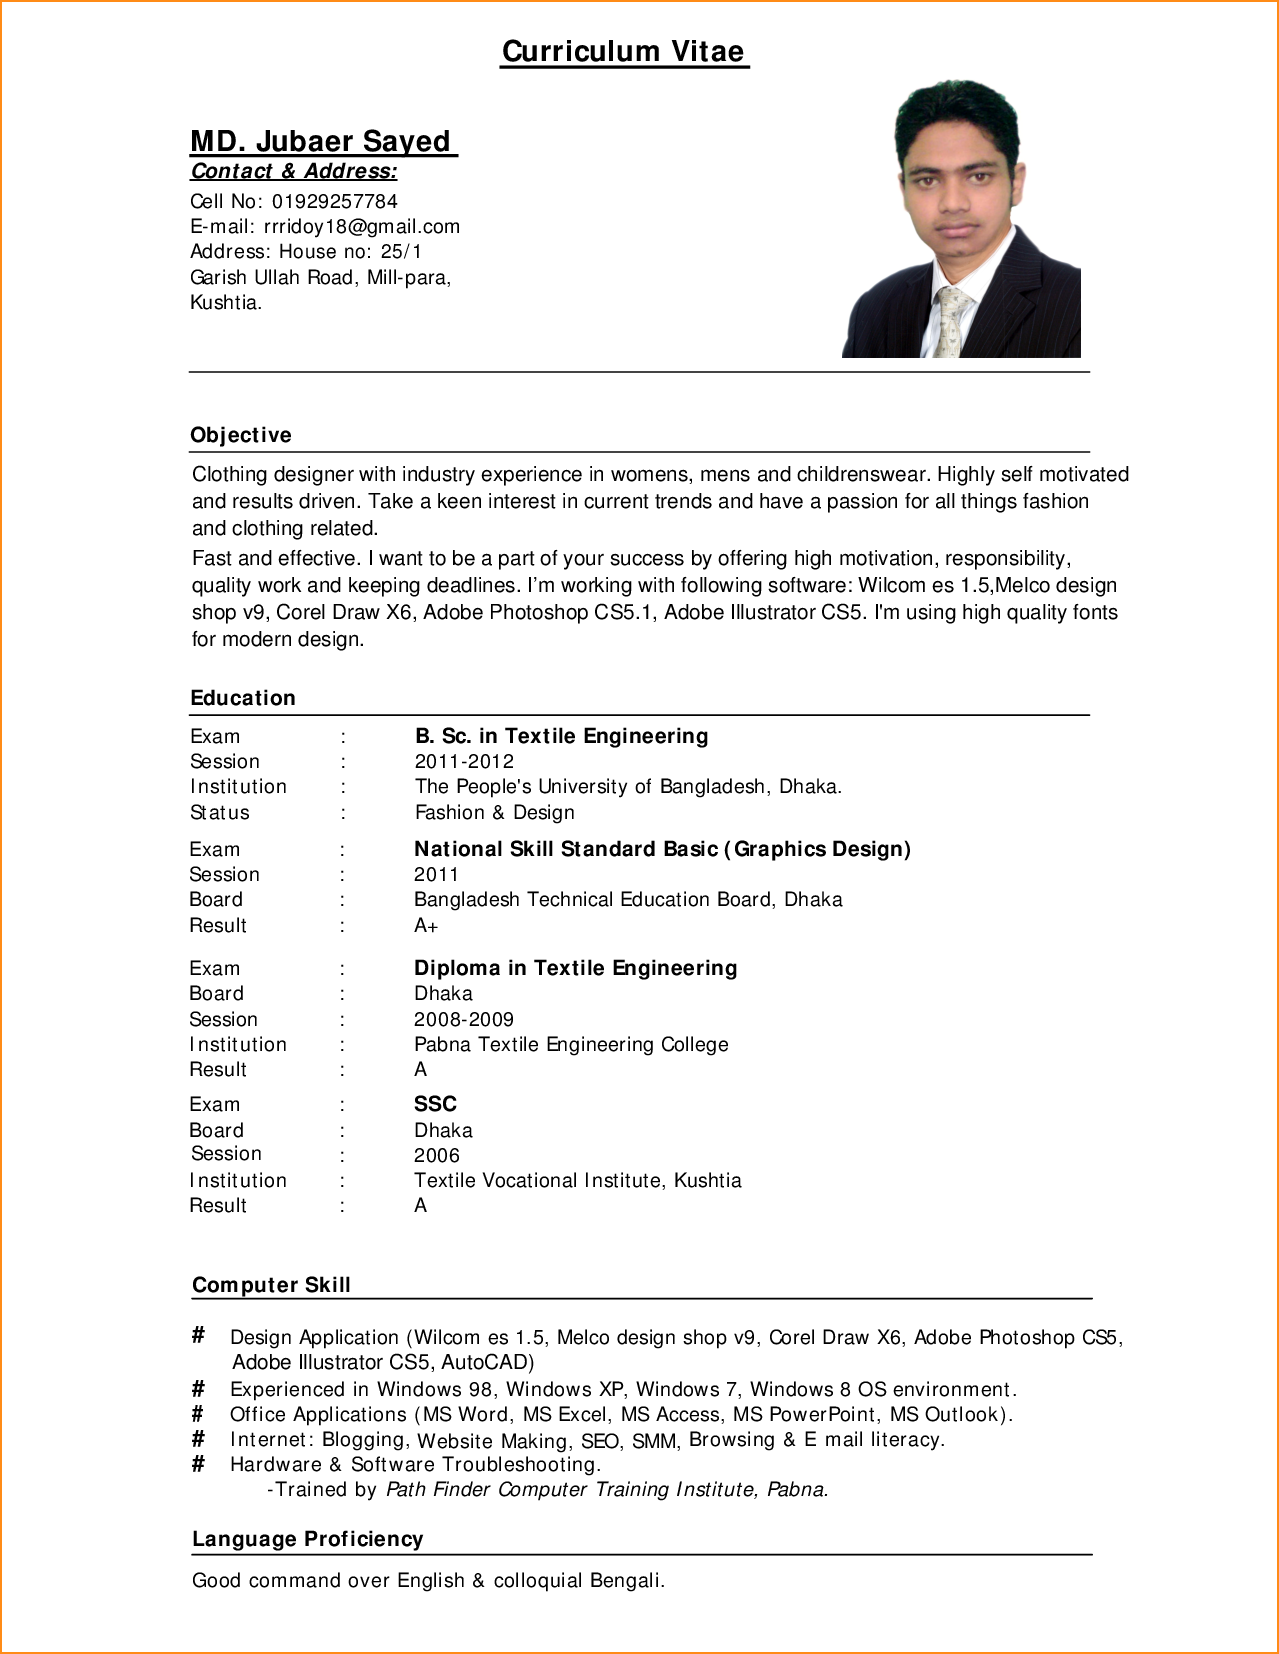 Male model resume esl best essay editor for hire for masters